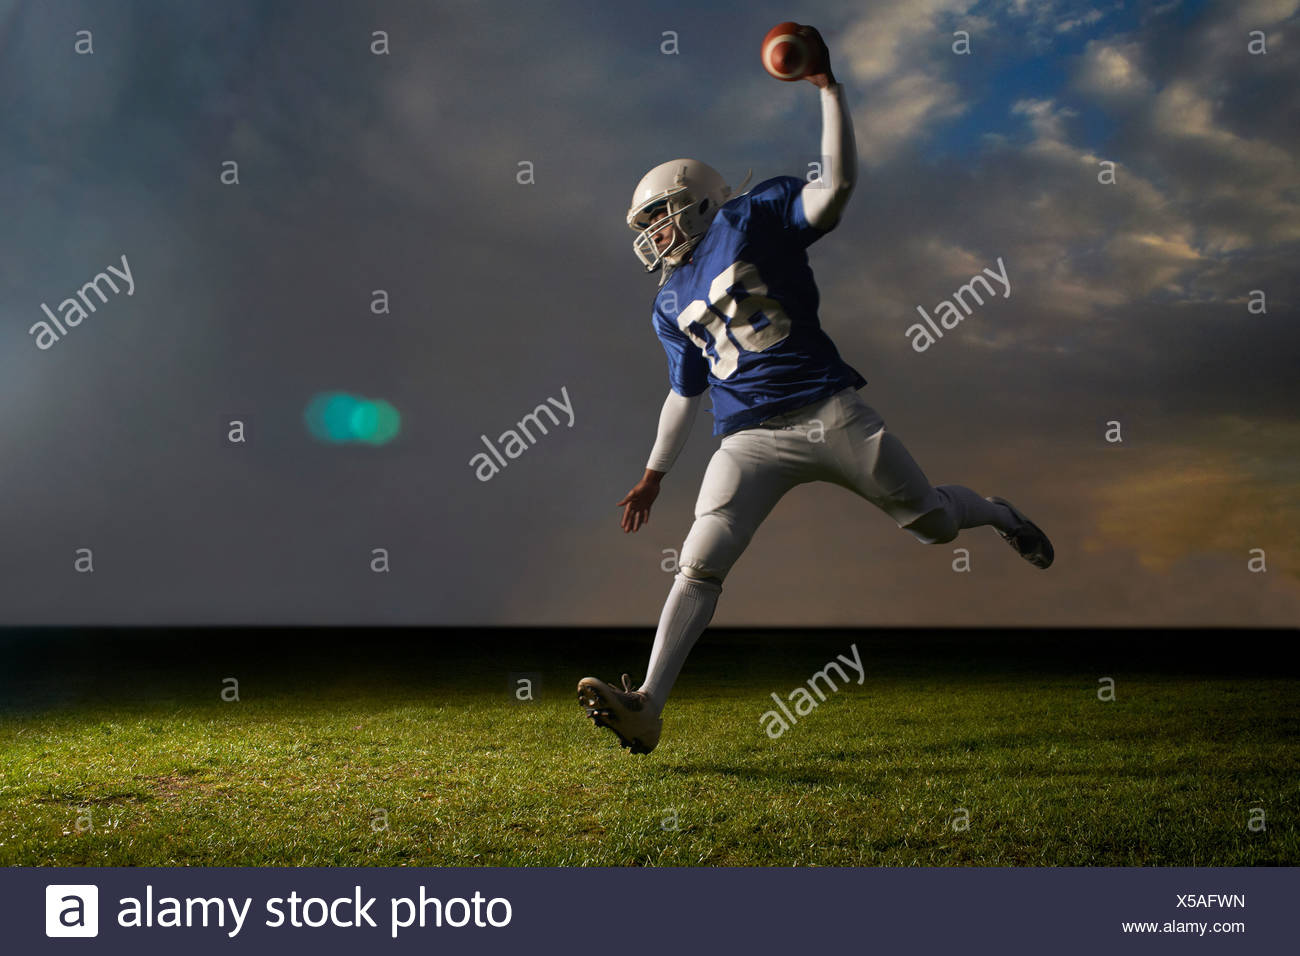 American football player in action - Stock Image